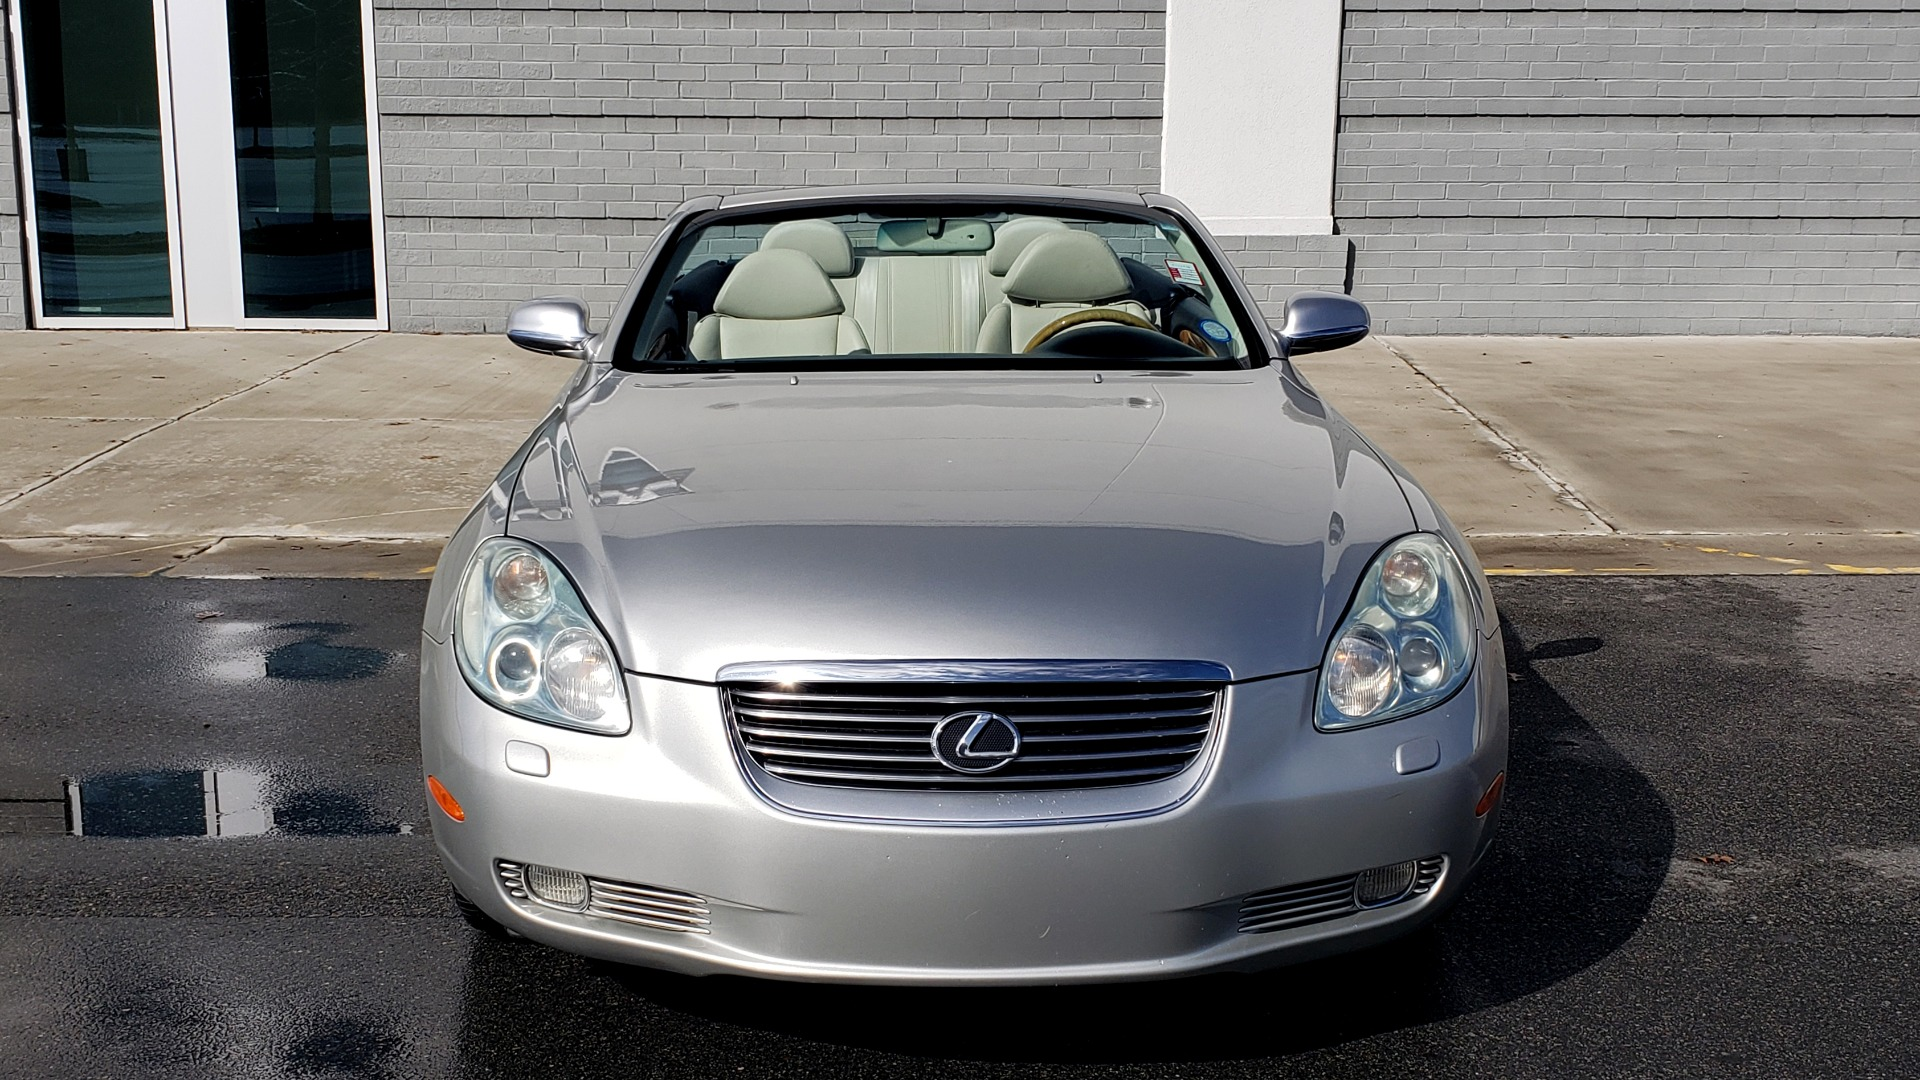 Used 2004 Lexus SC 430 CONVERTIBLE / 4.3L V8 / 5-SPD AUTO / MARK LEVINSON / 18IN WHEELS for sale Sold at Formula Imports in Charlotte NC 28227 27